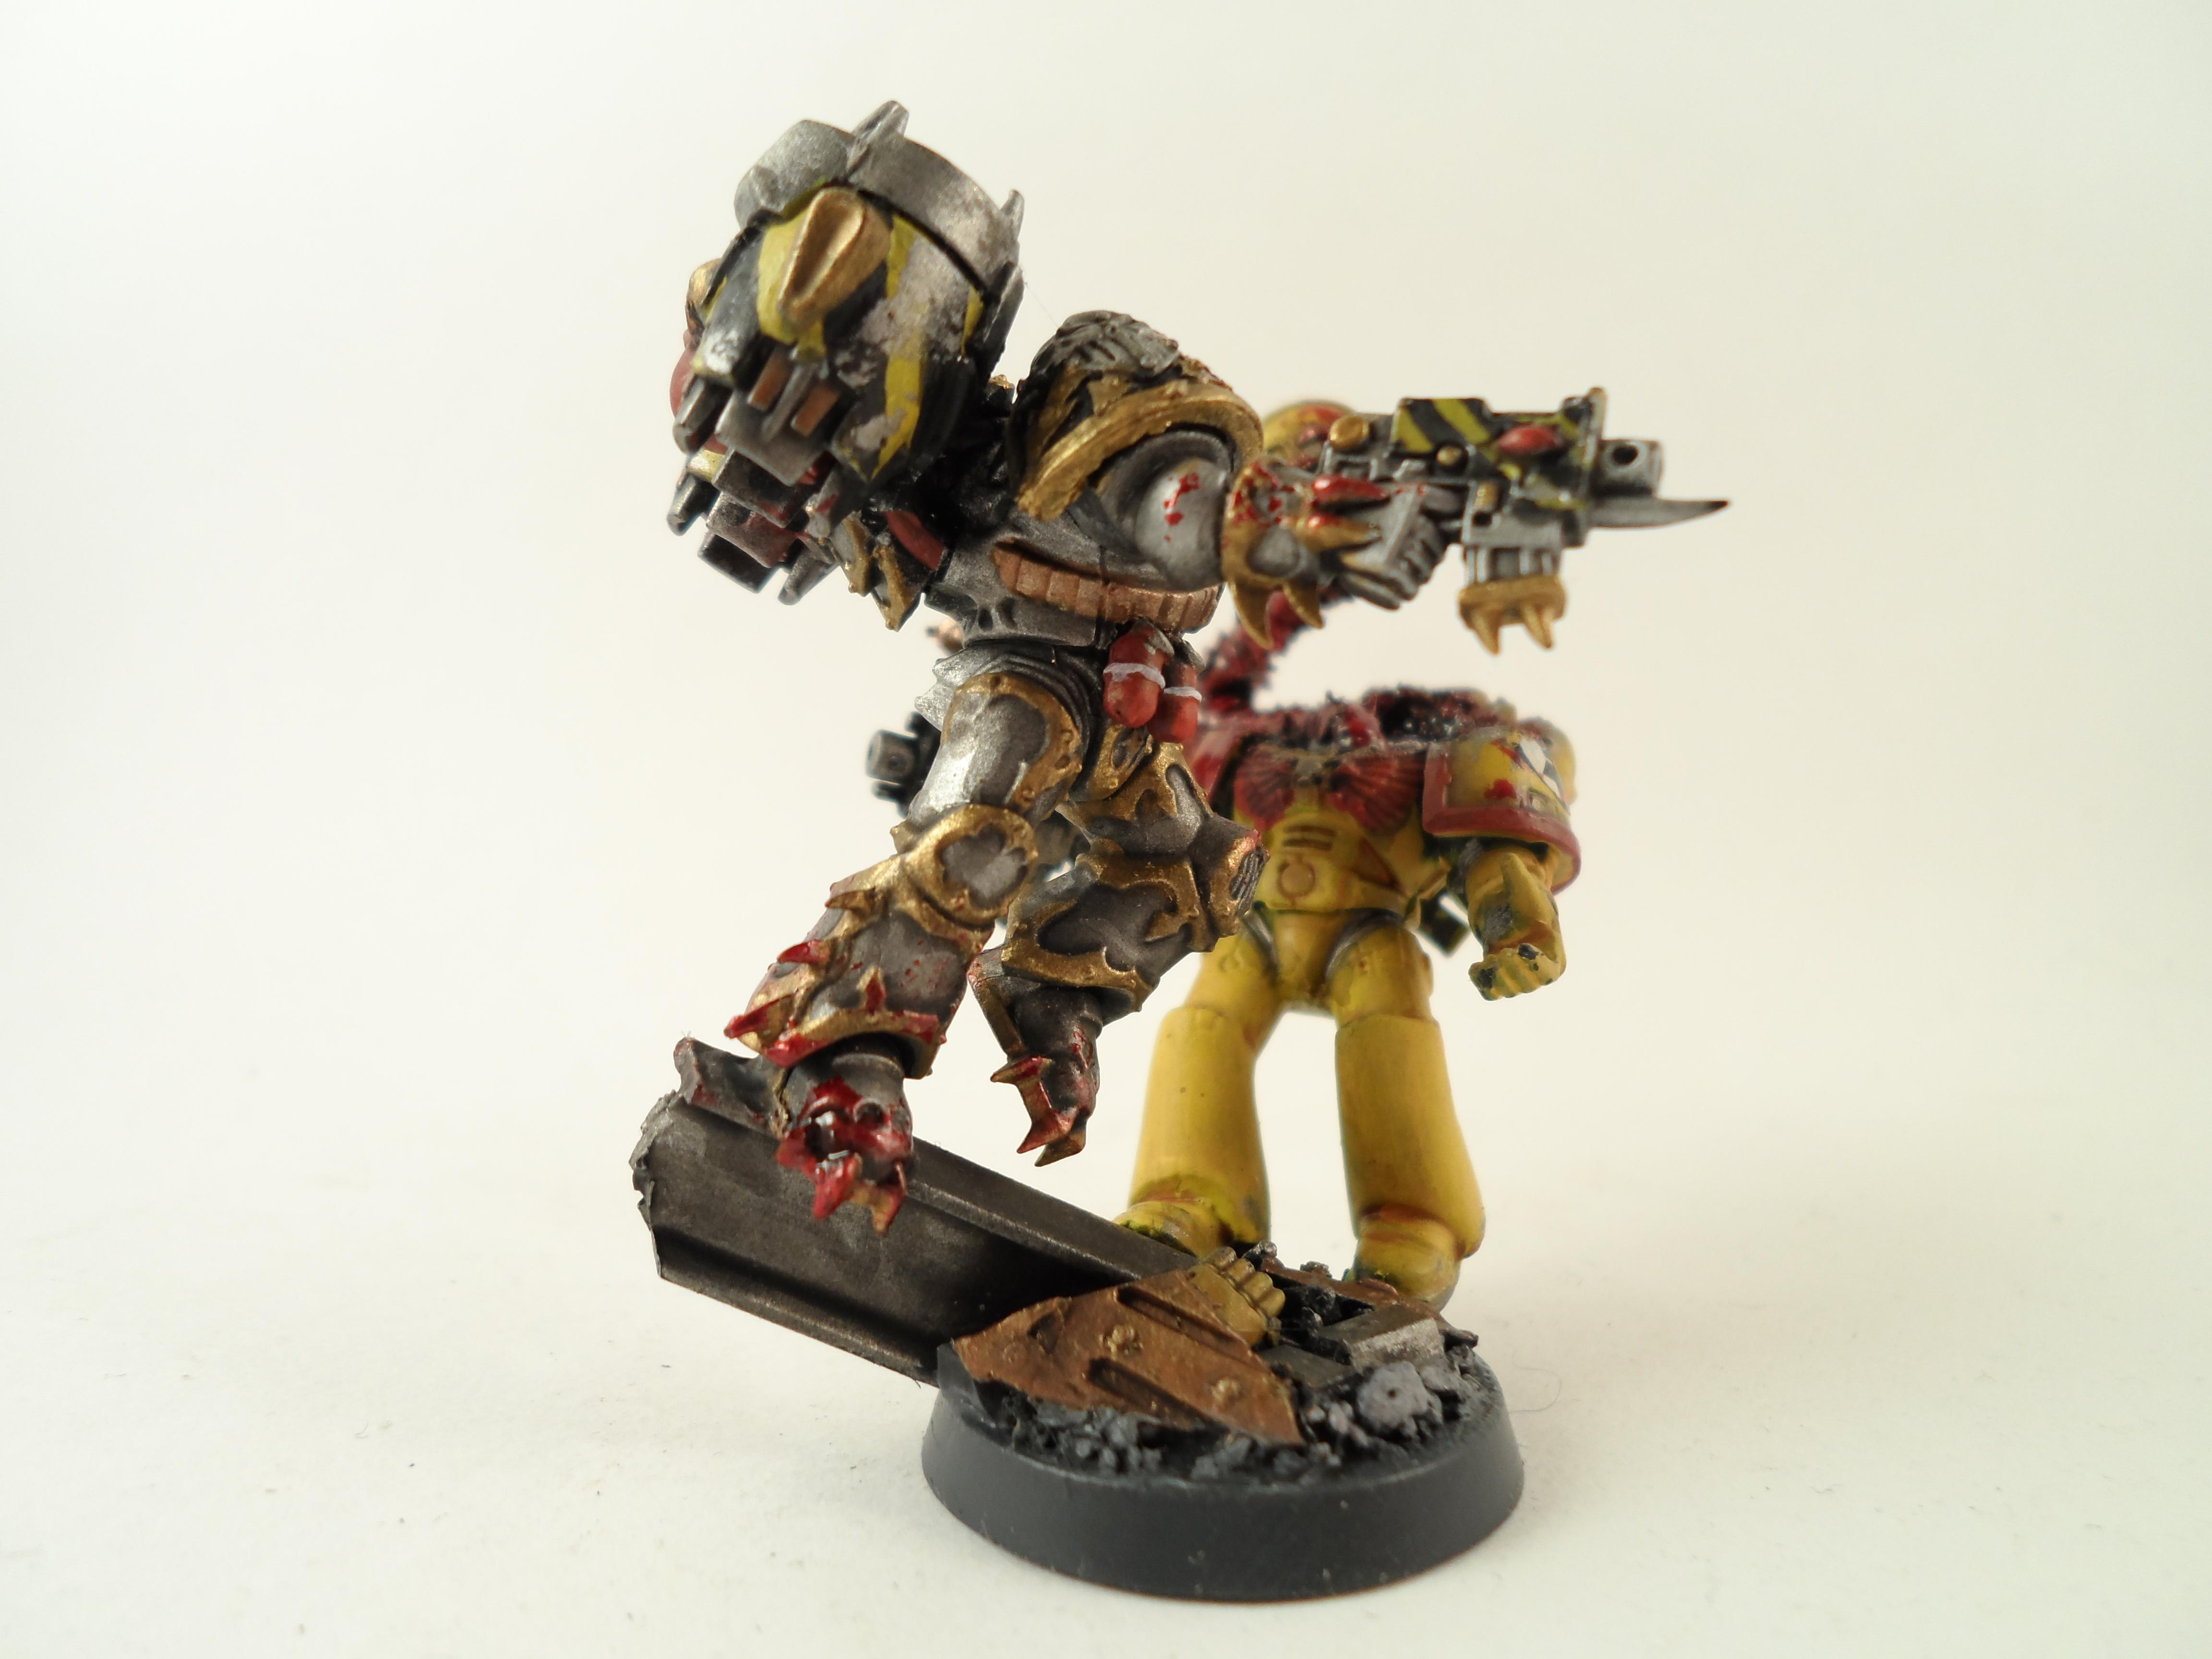 Imperial Fists, Iron Warriors, Jump Infantry, Warhammer 40,000